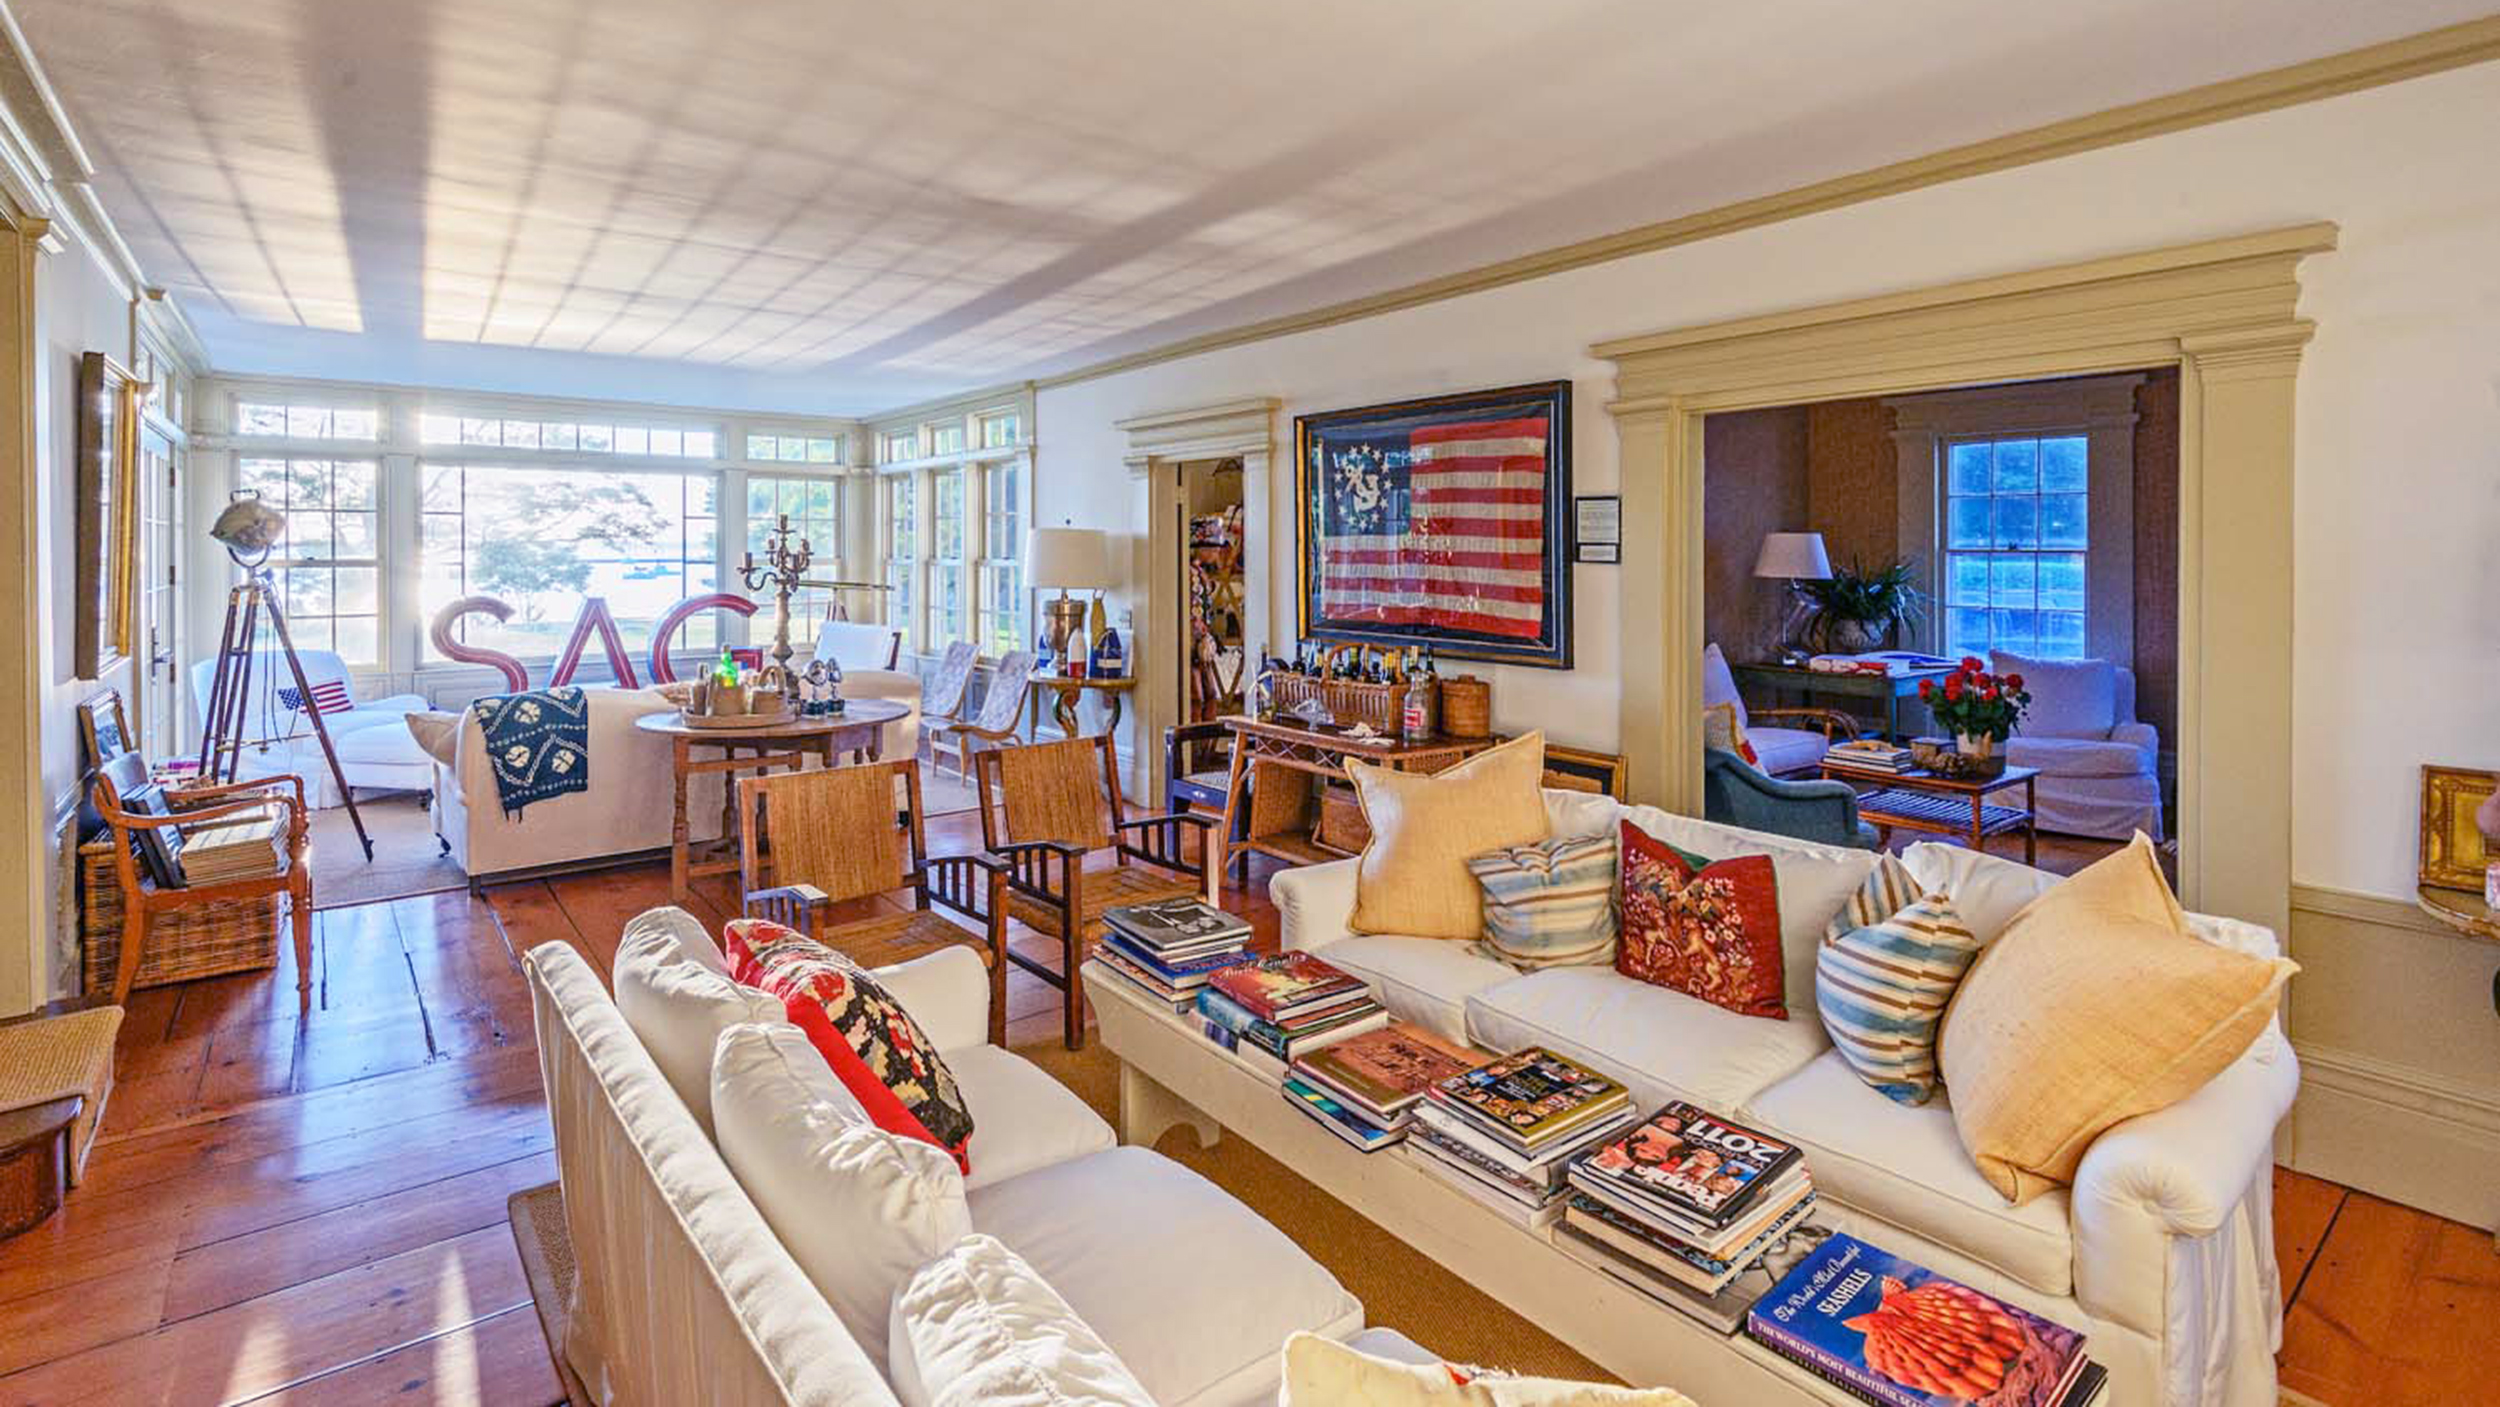 Christie brinkley is selling another hamptons home peek for Living room today